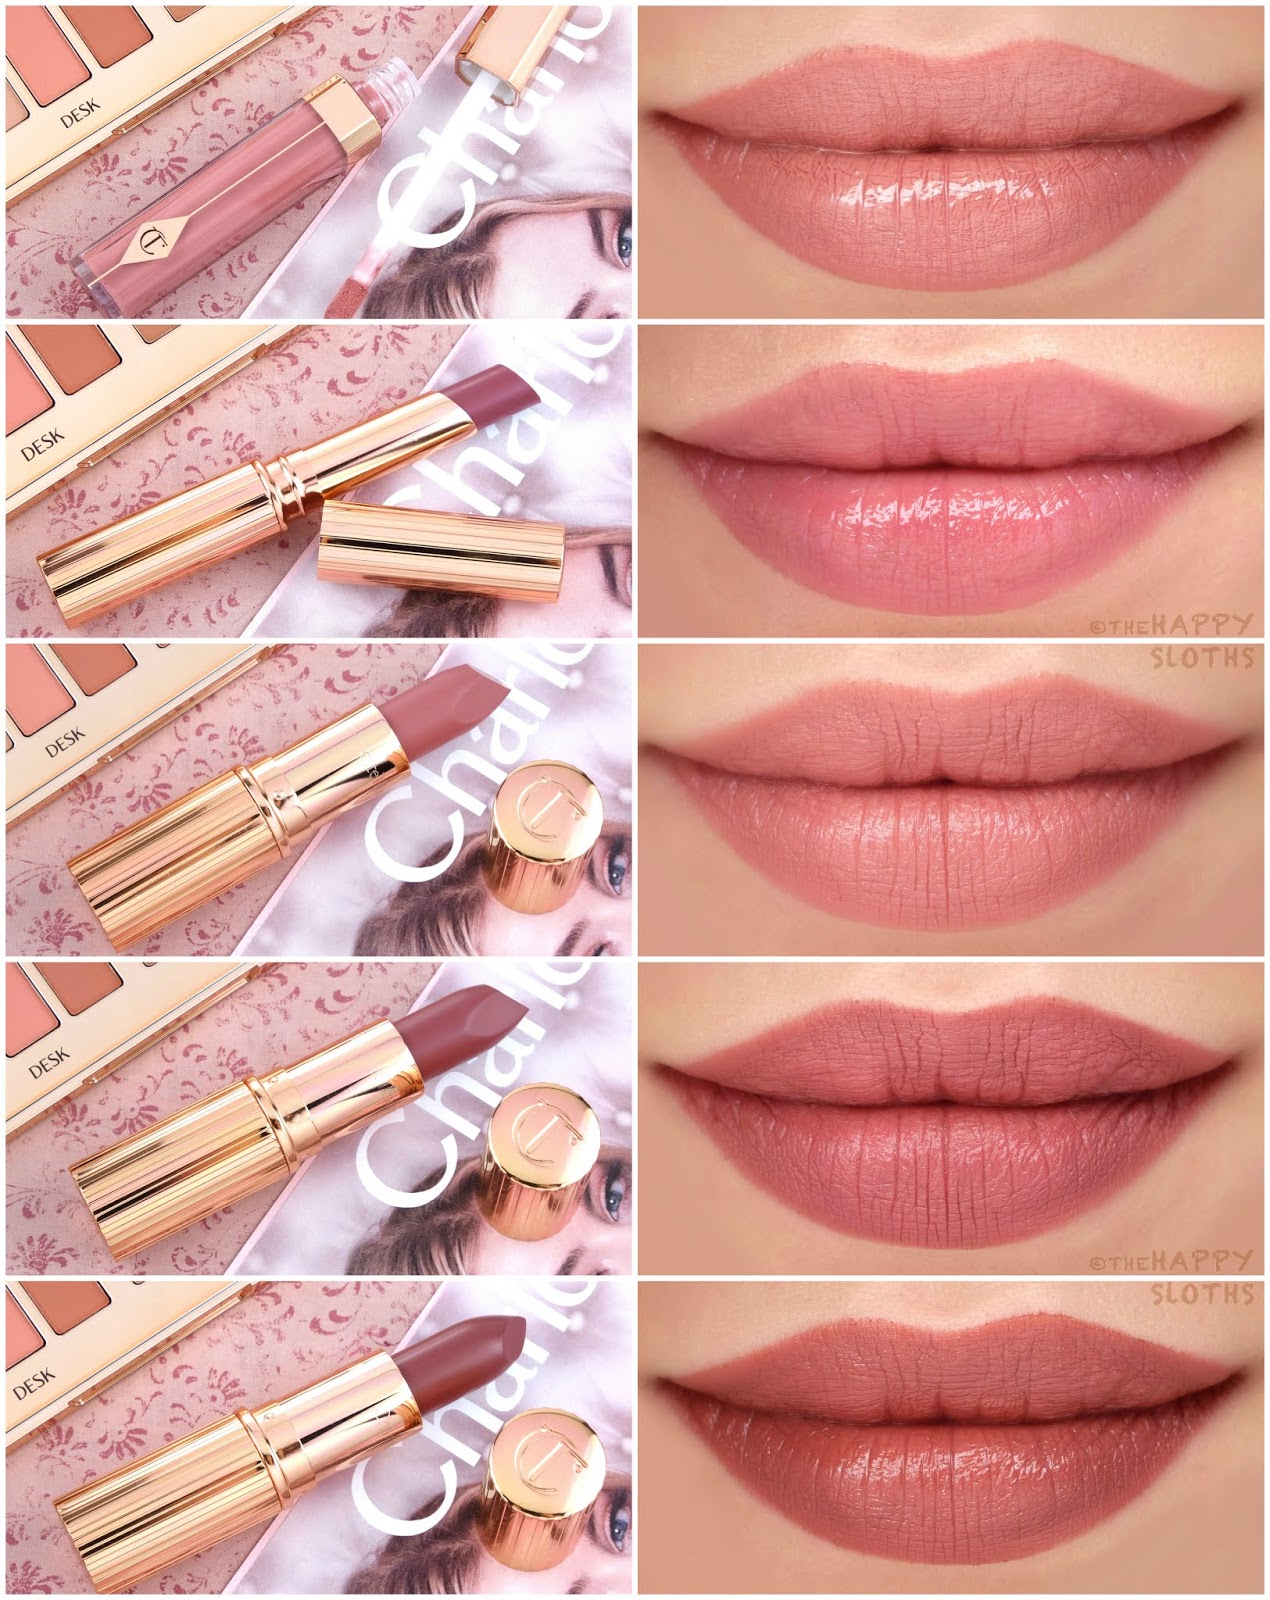 Charlotte Tilbury | *NEW* Pillow Talk Collection: Review and Swatches